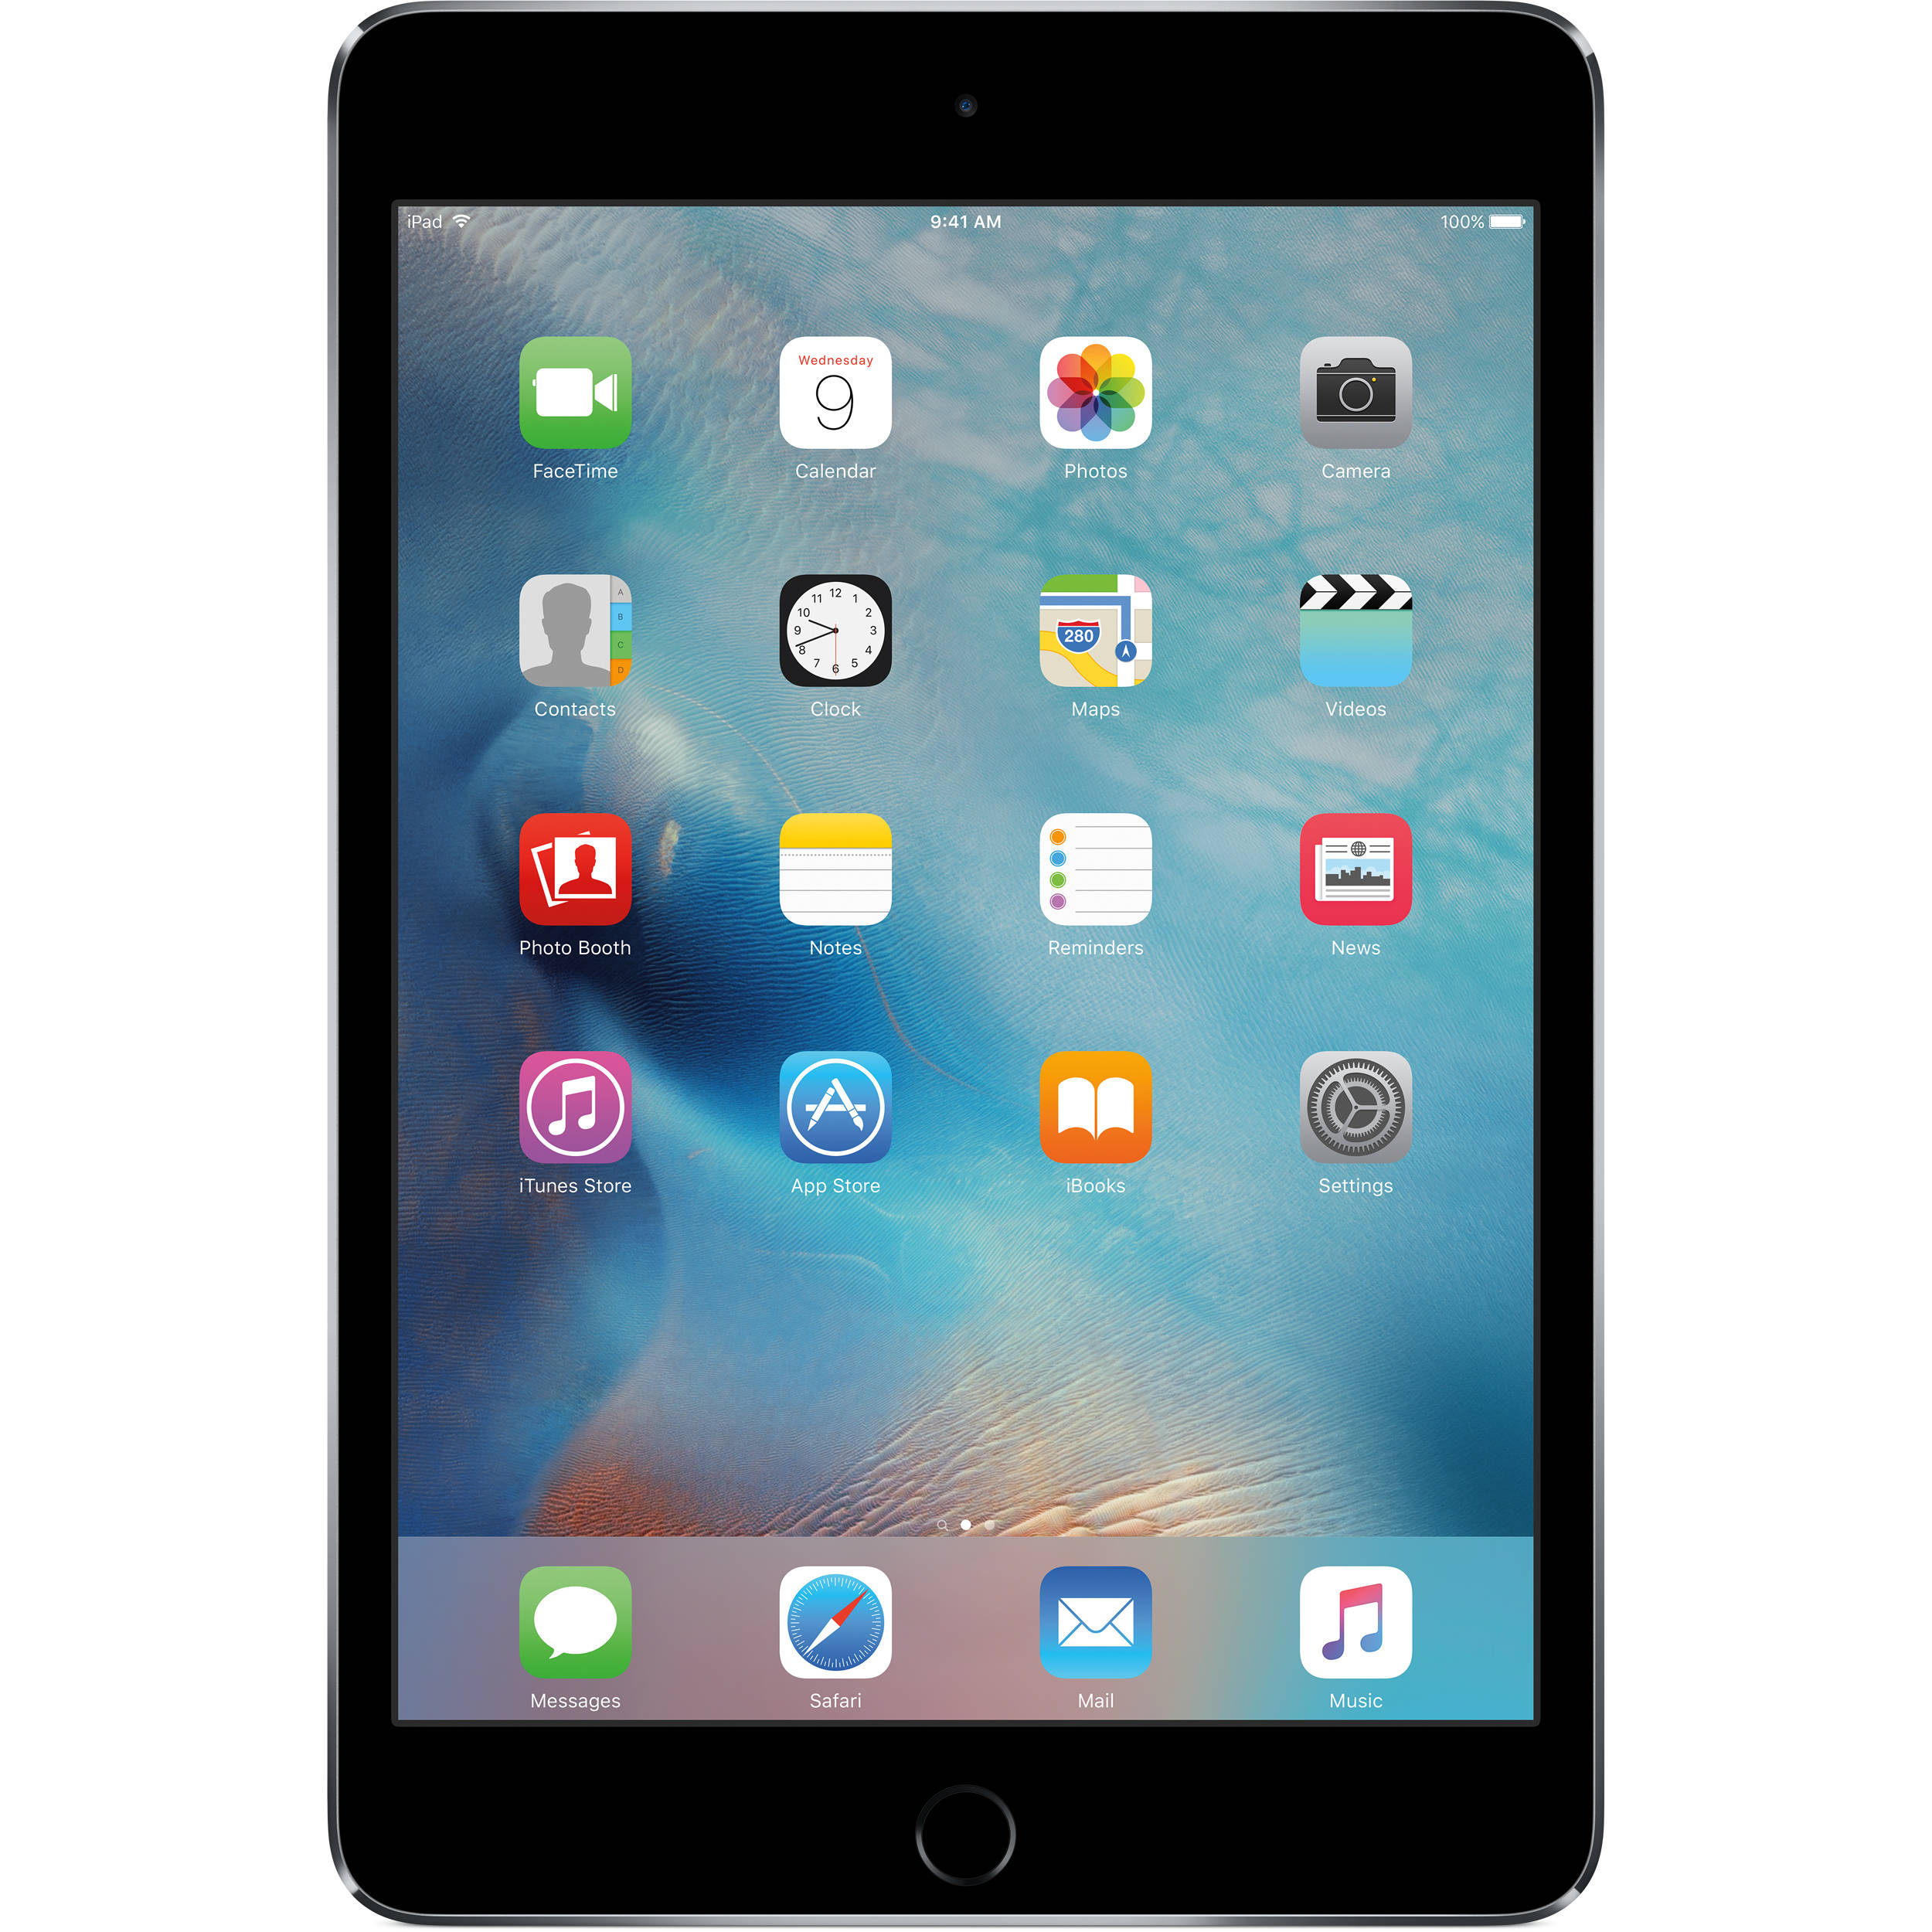 Apple Ipad Mini 4 128GB WiFi Space Gray, MK9N2AE/A